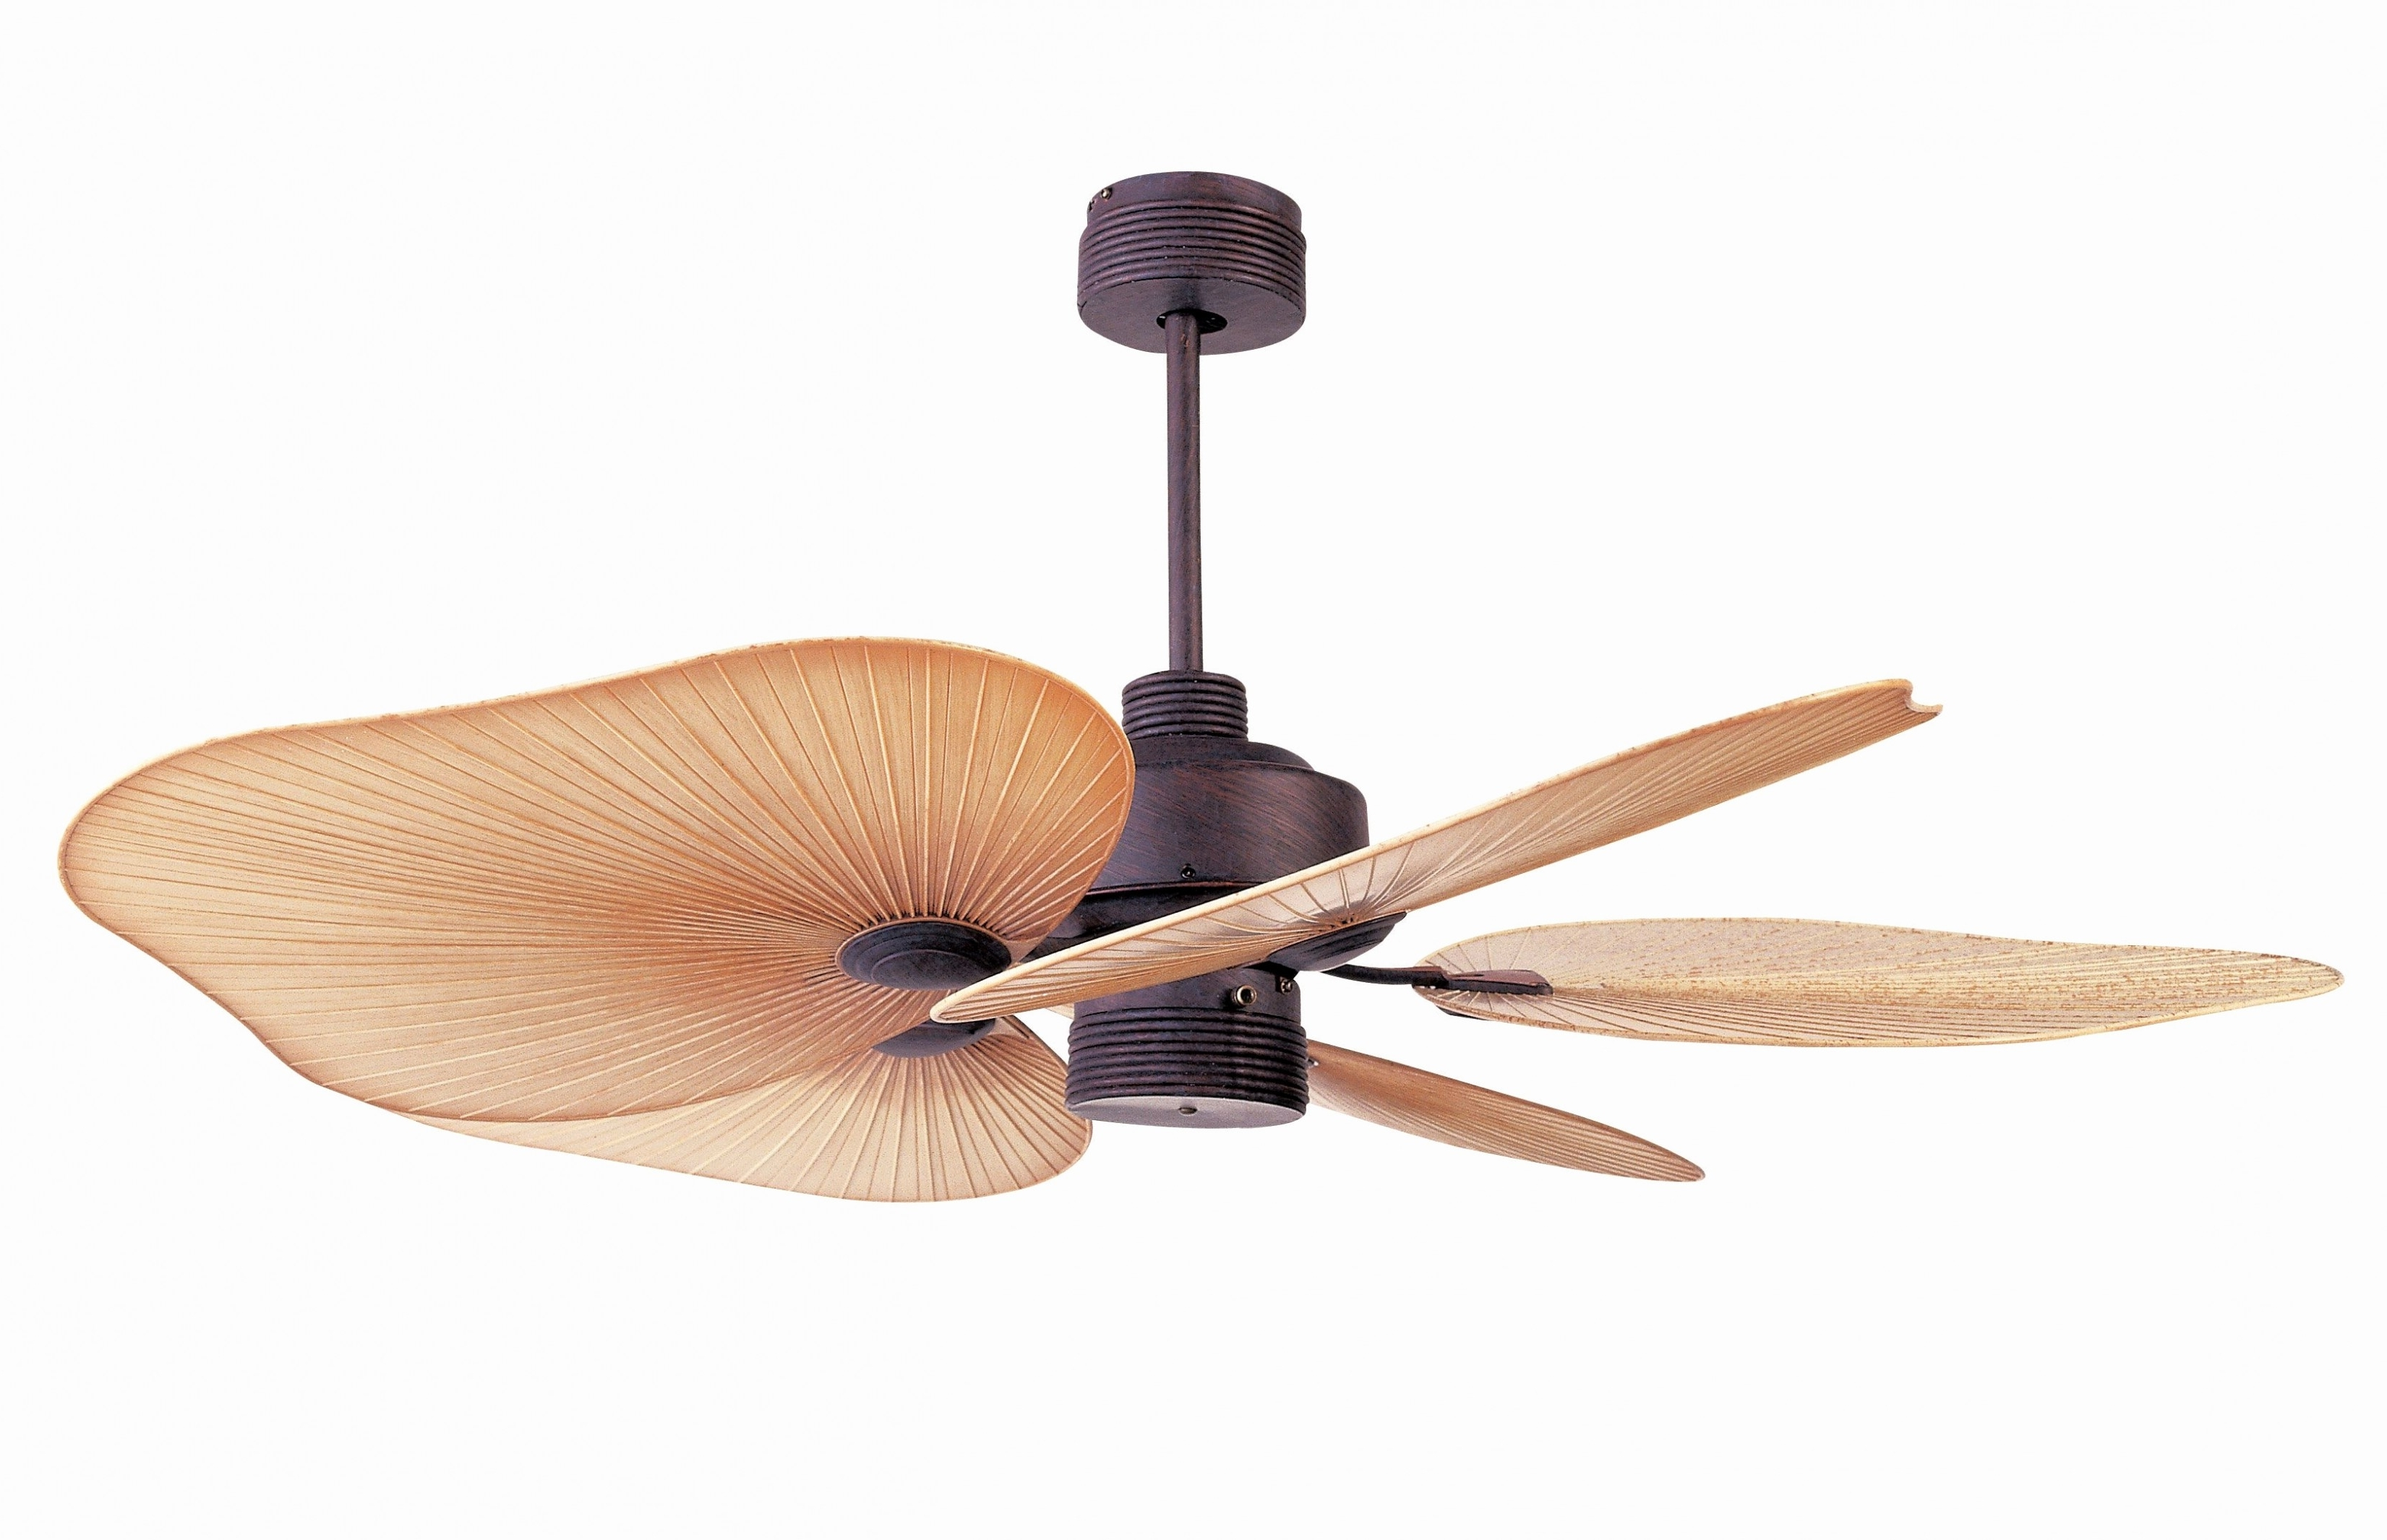 Fashionable Tropical Design Outdoor Ceiling Fans With Balancing A Ceiling Fan Fresh Tropical Ceiling Fans Ideas (View 17 of 20)